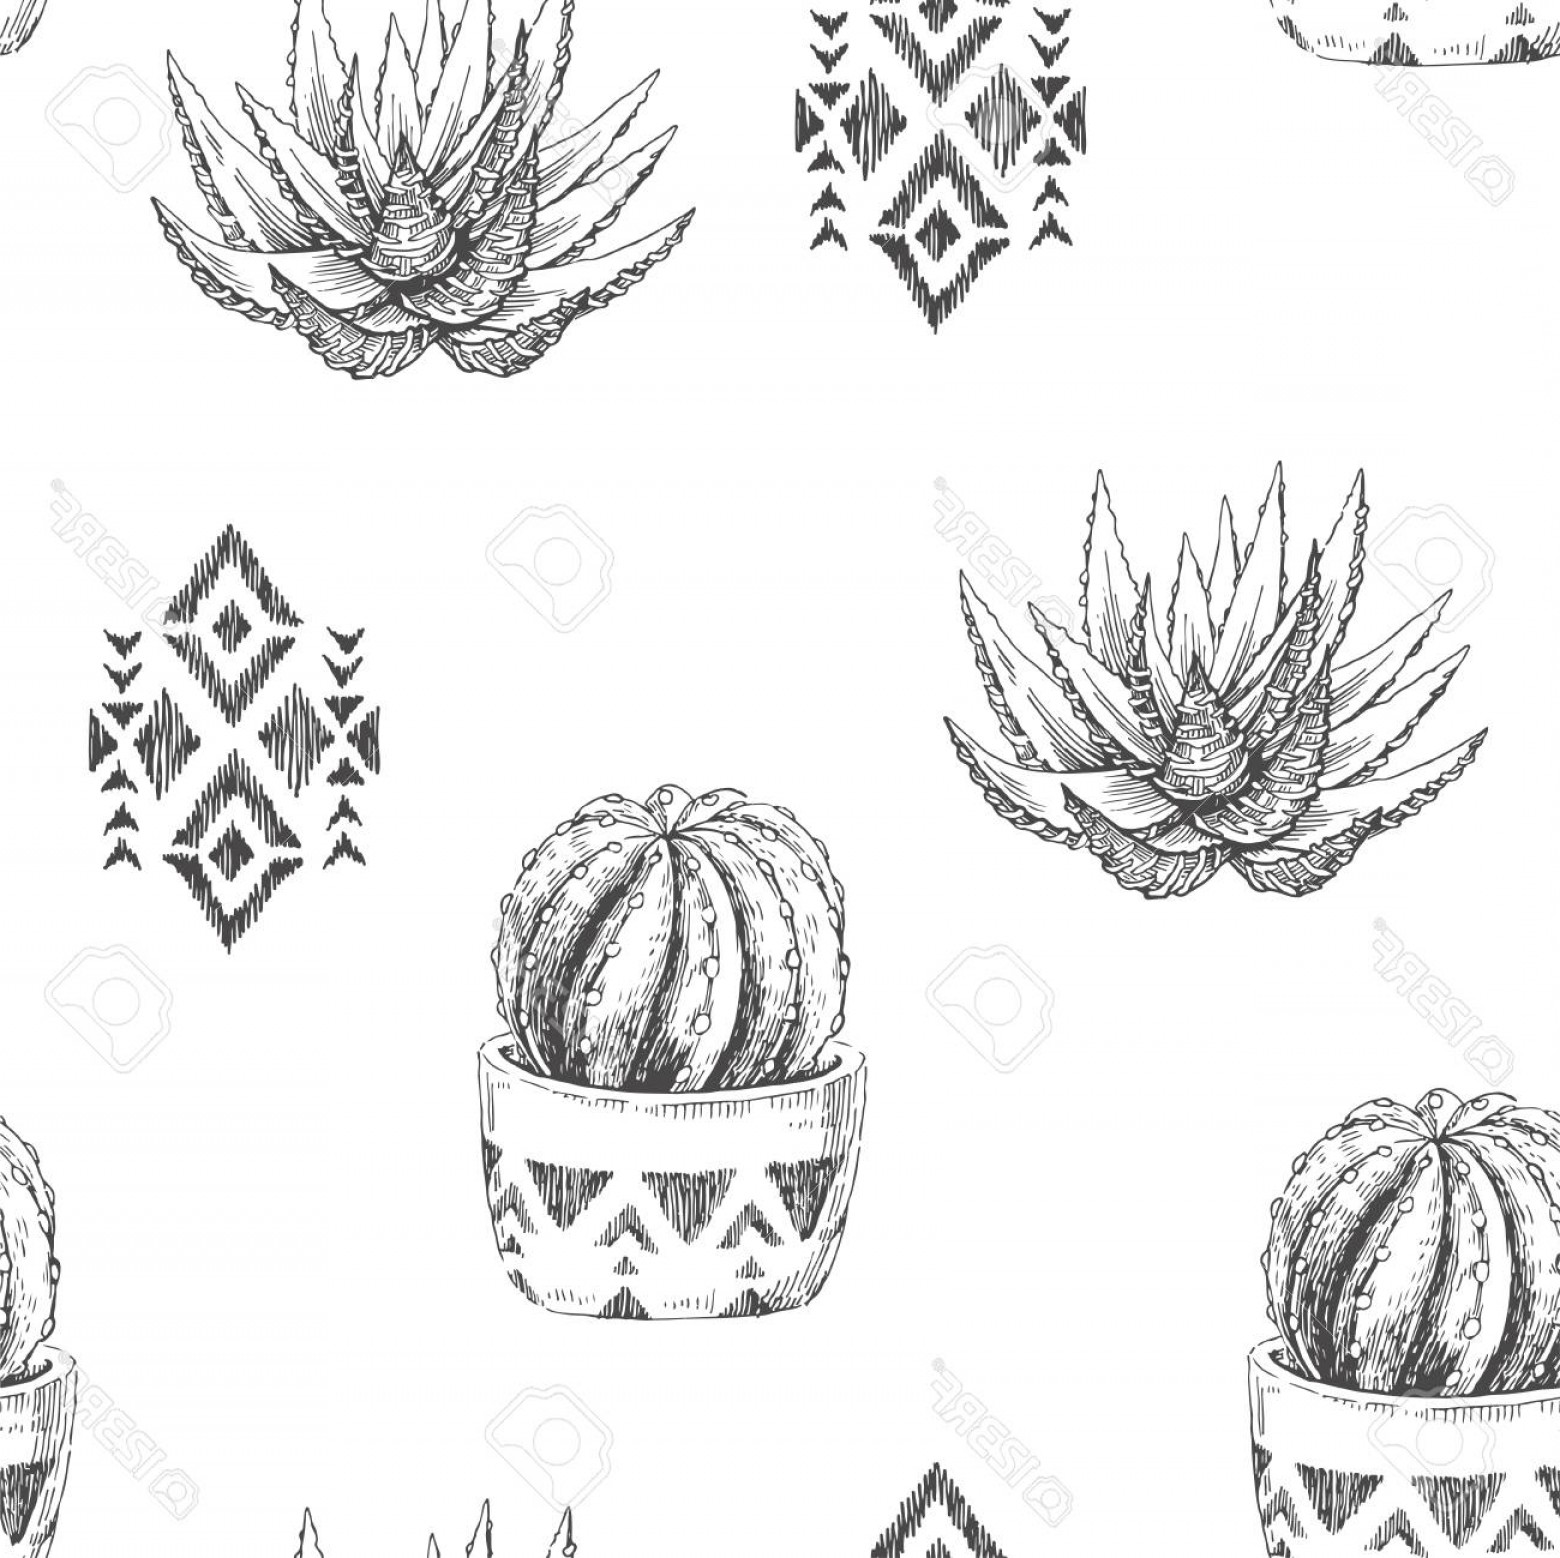 Aztec Cactus Vector: Photostock Vector A Vector Seamless Pattern With Houseplants And Aztec Ornaments Vintage Illustration With Cactus And